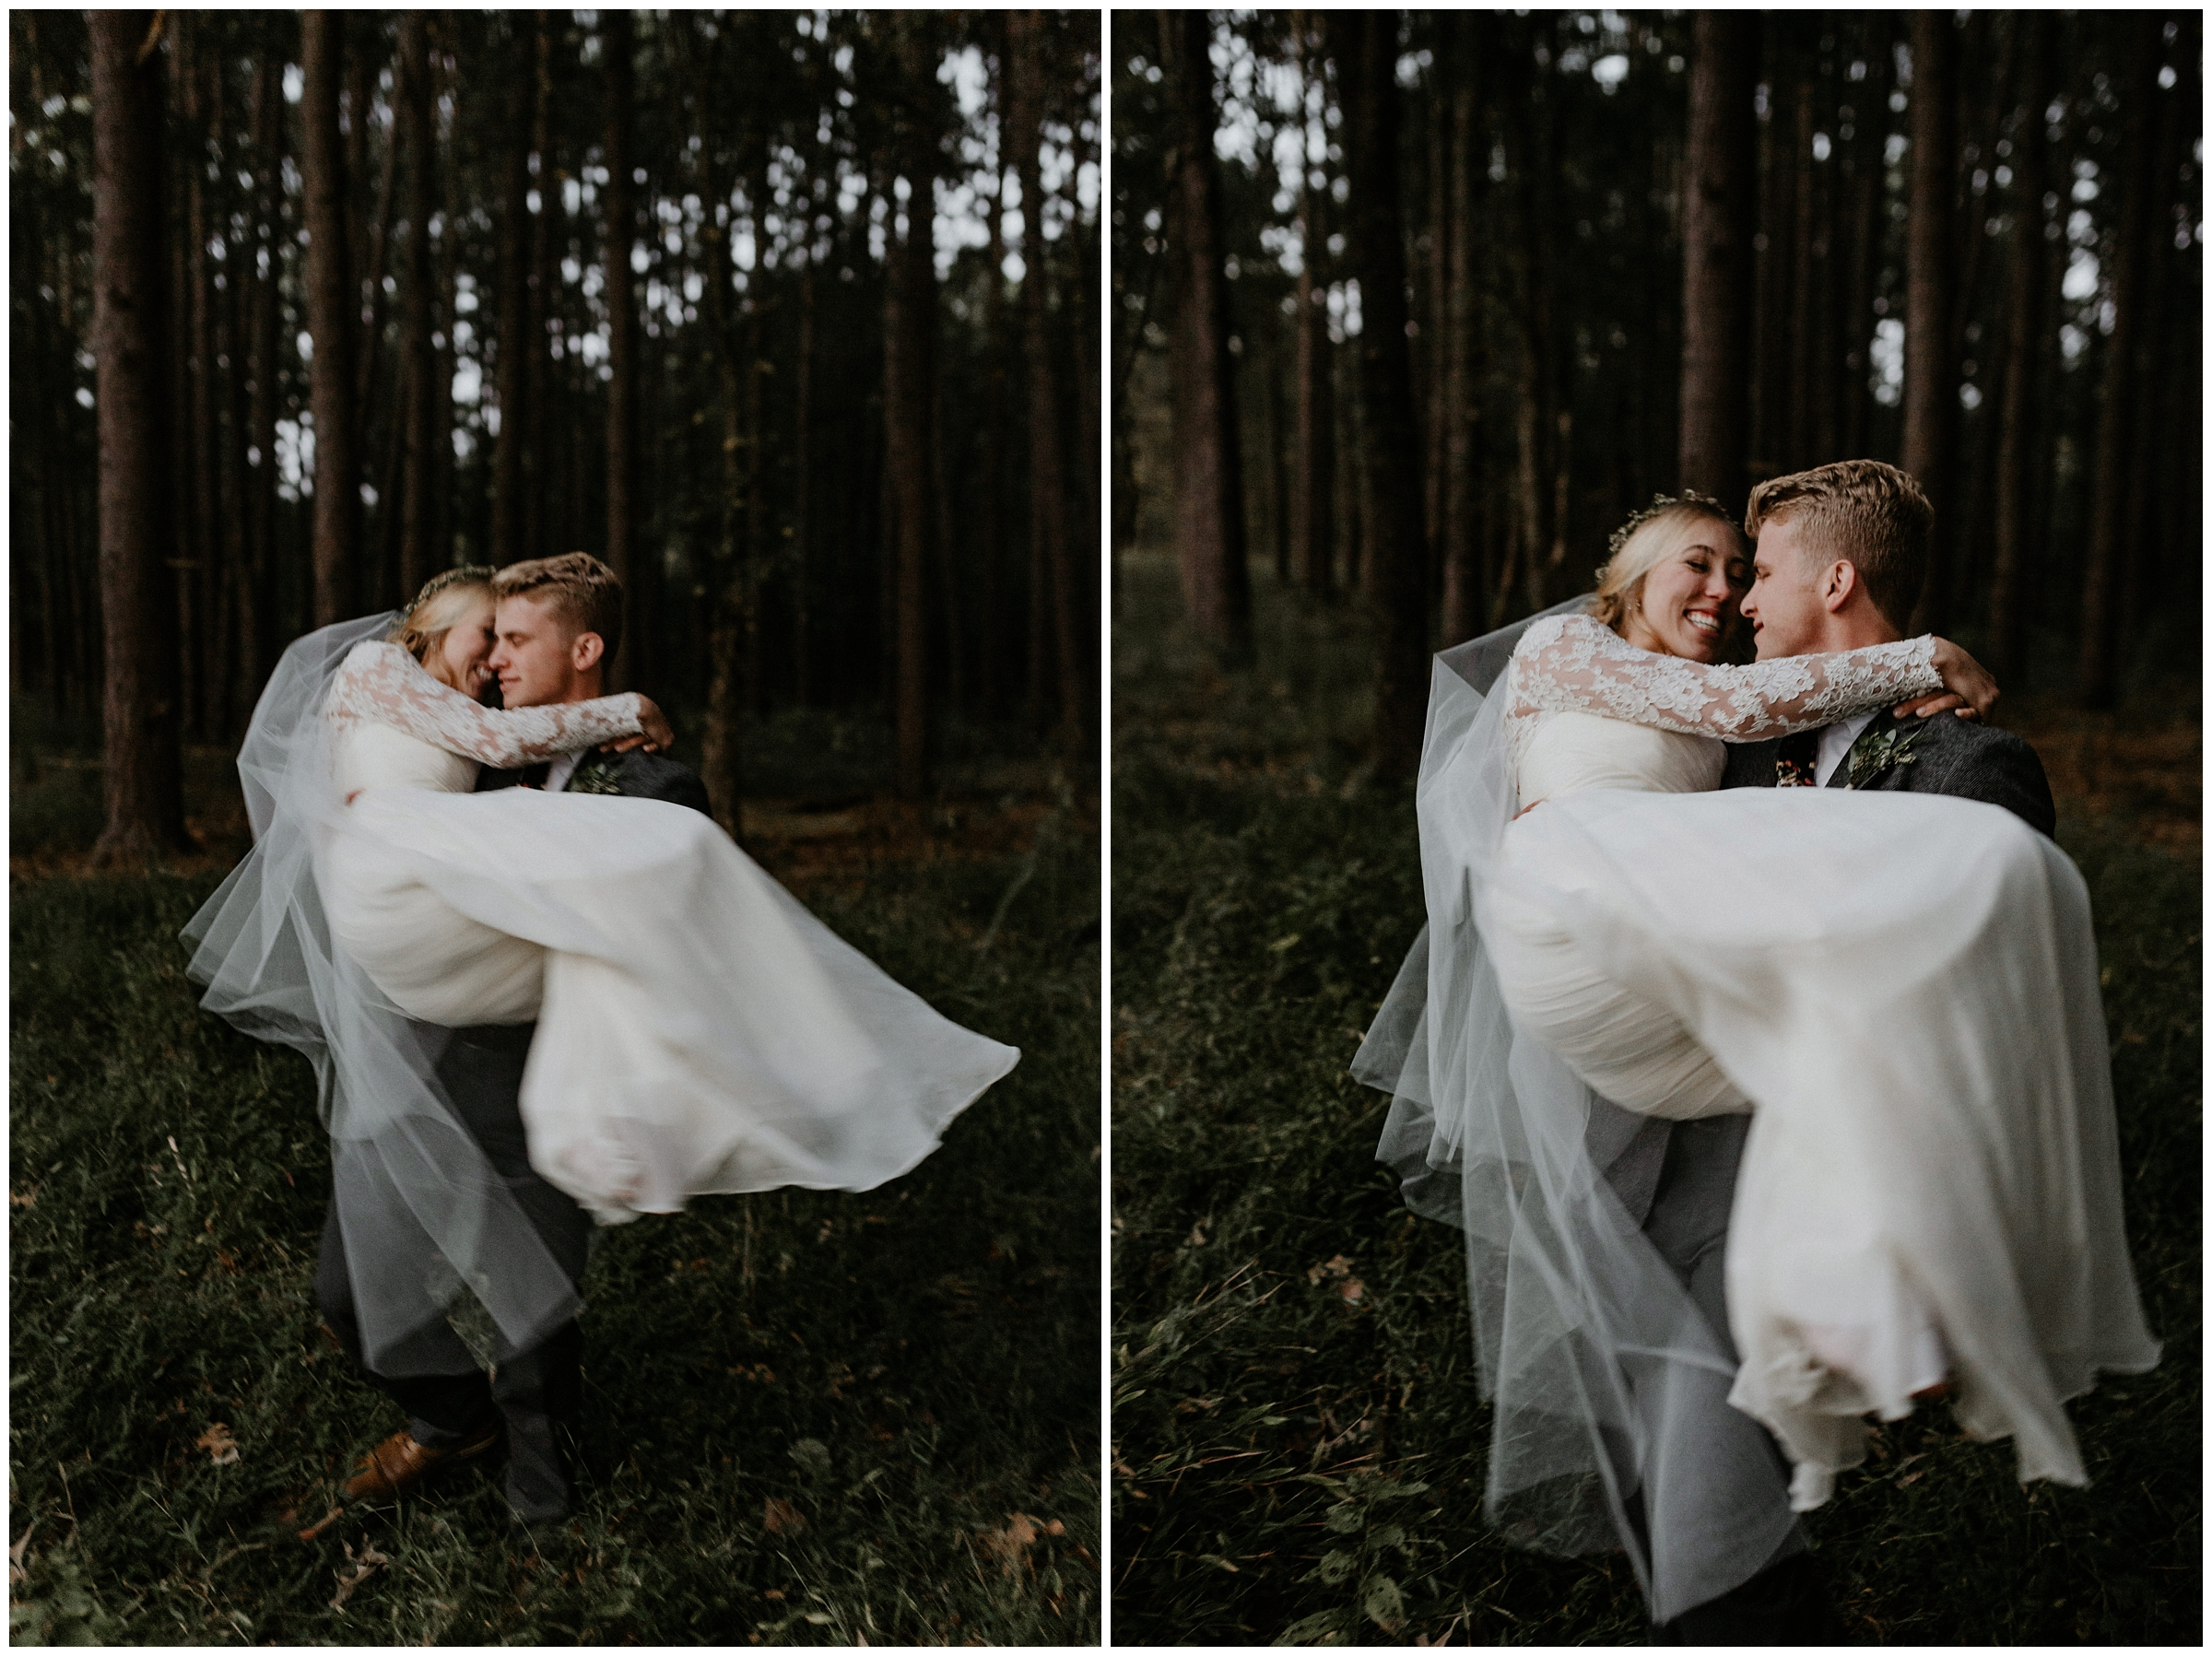 groom picking up bride and spinning her